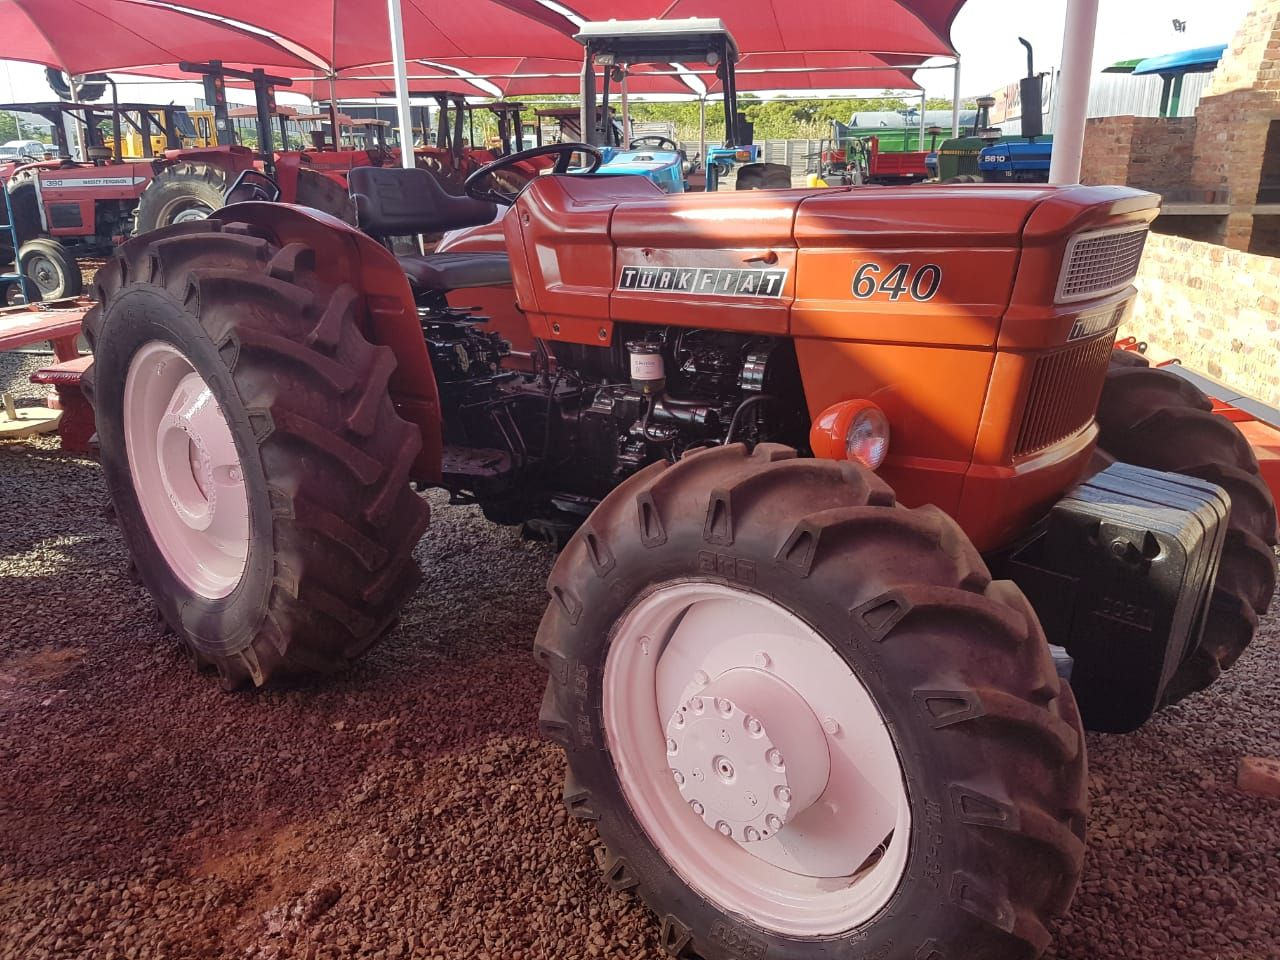 Geliebte Fiat 640 Tractor (974) R100,000 | Used Tractors For Sale @NV_03